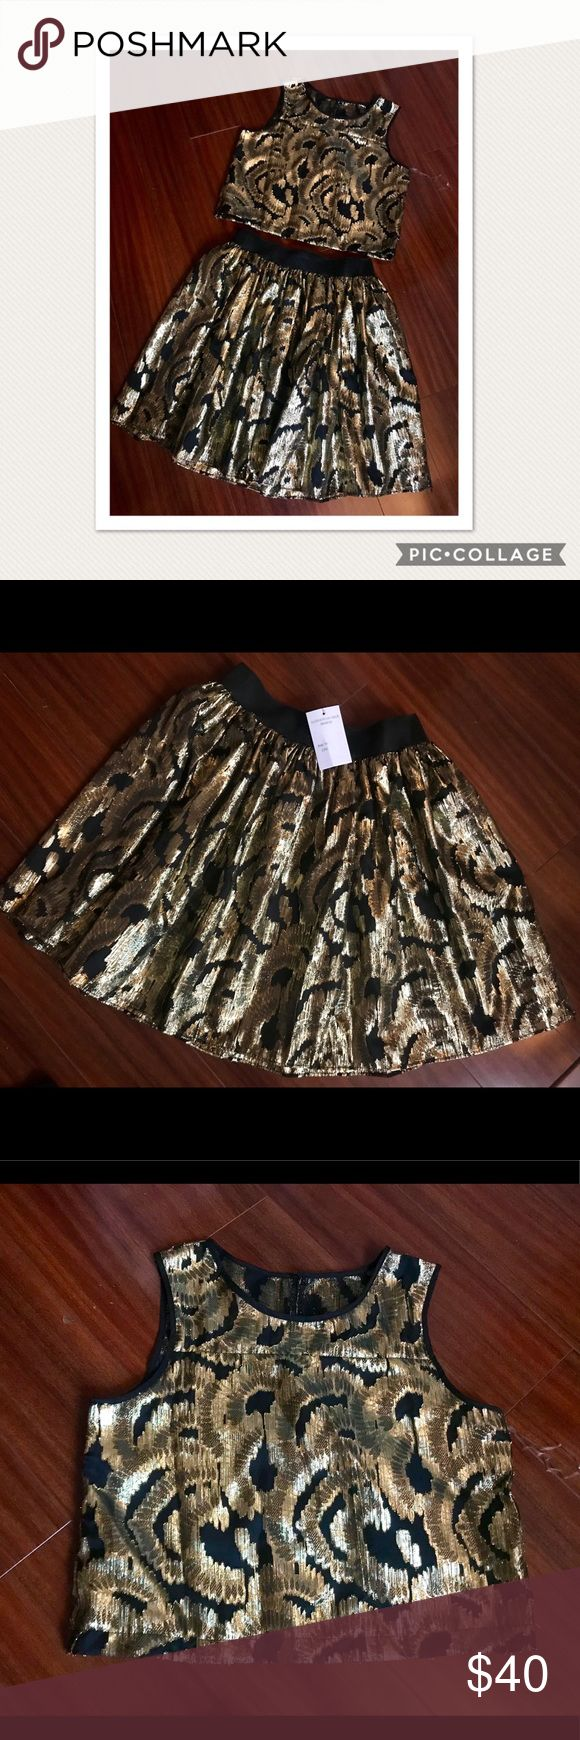 ✨Nordstrom Store✨ 2 pieces Set Gold&Black Super chic and Fashion 2 pieces Set - skirt & blouse - black & golden design Size S or 14 Nordstrom Dresses